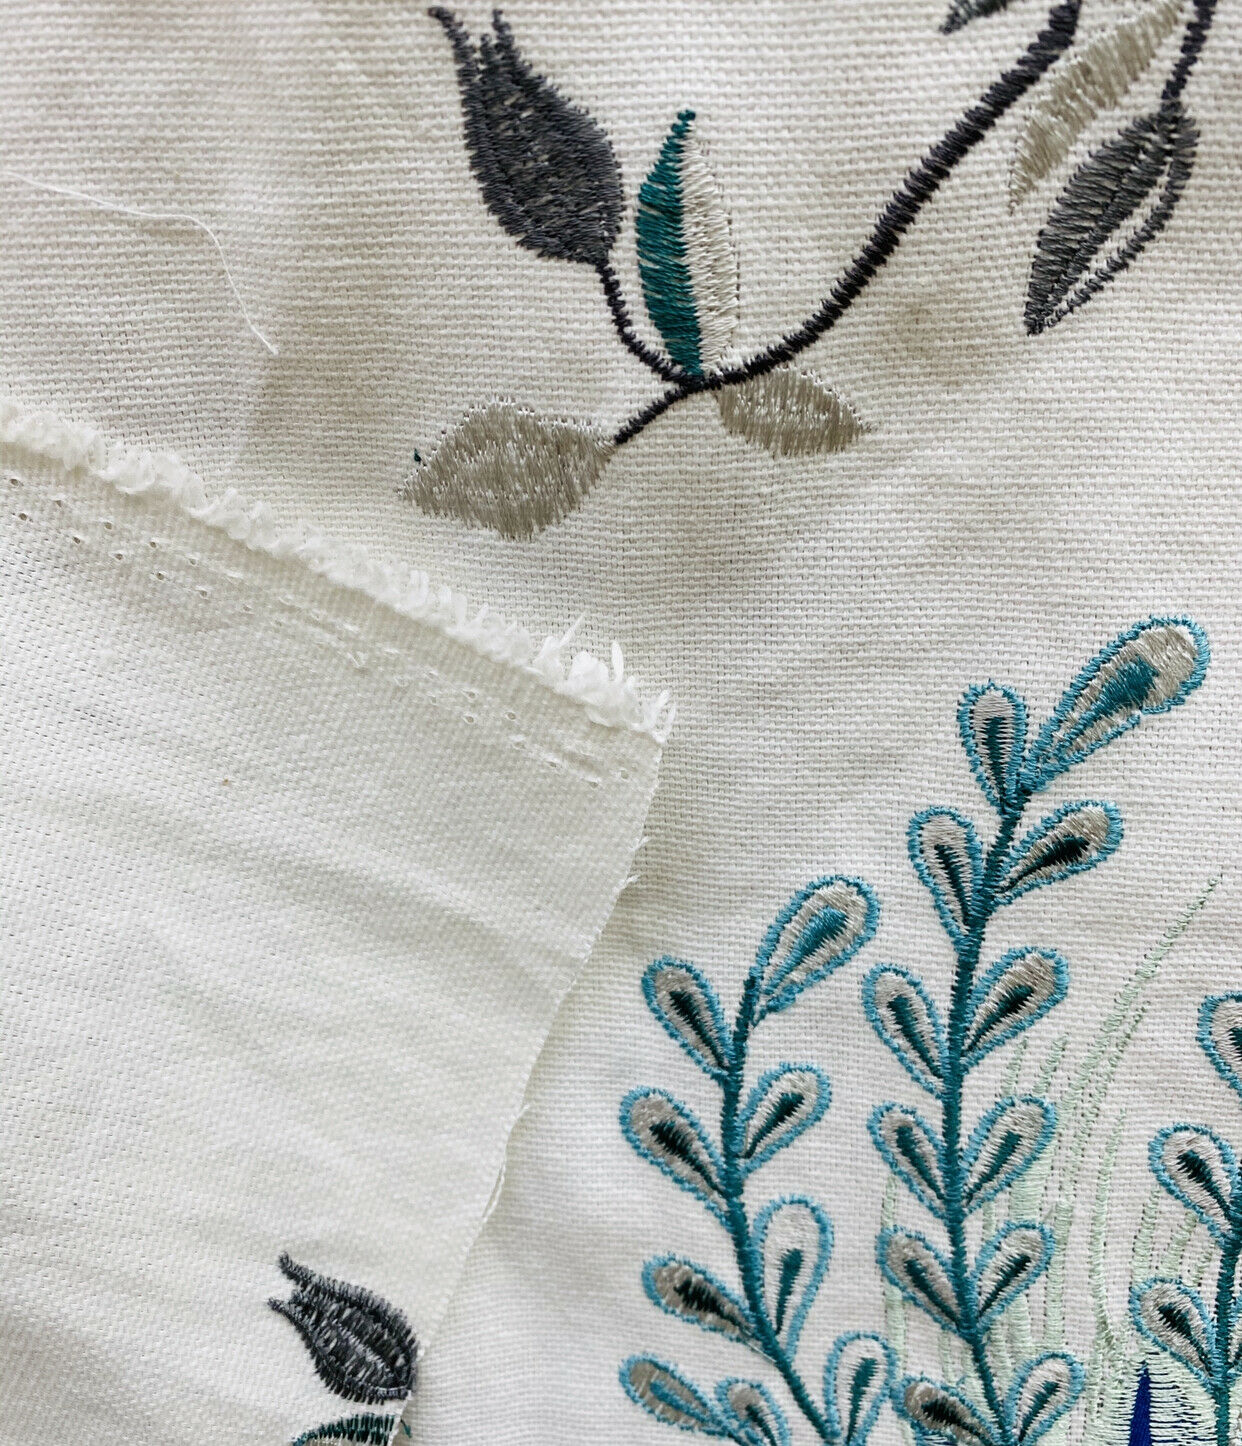 NEW! Designer Floral & Bird Motif Drapery Upholstery Fabric- French Blue